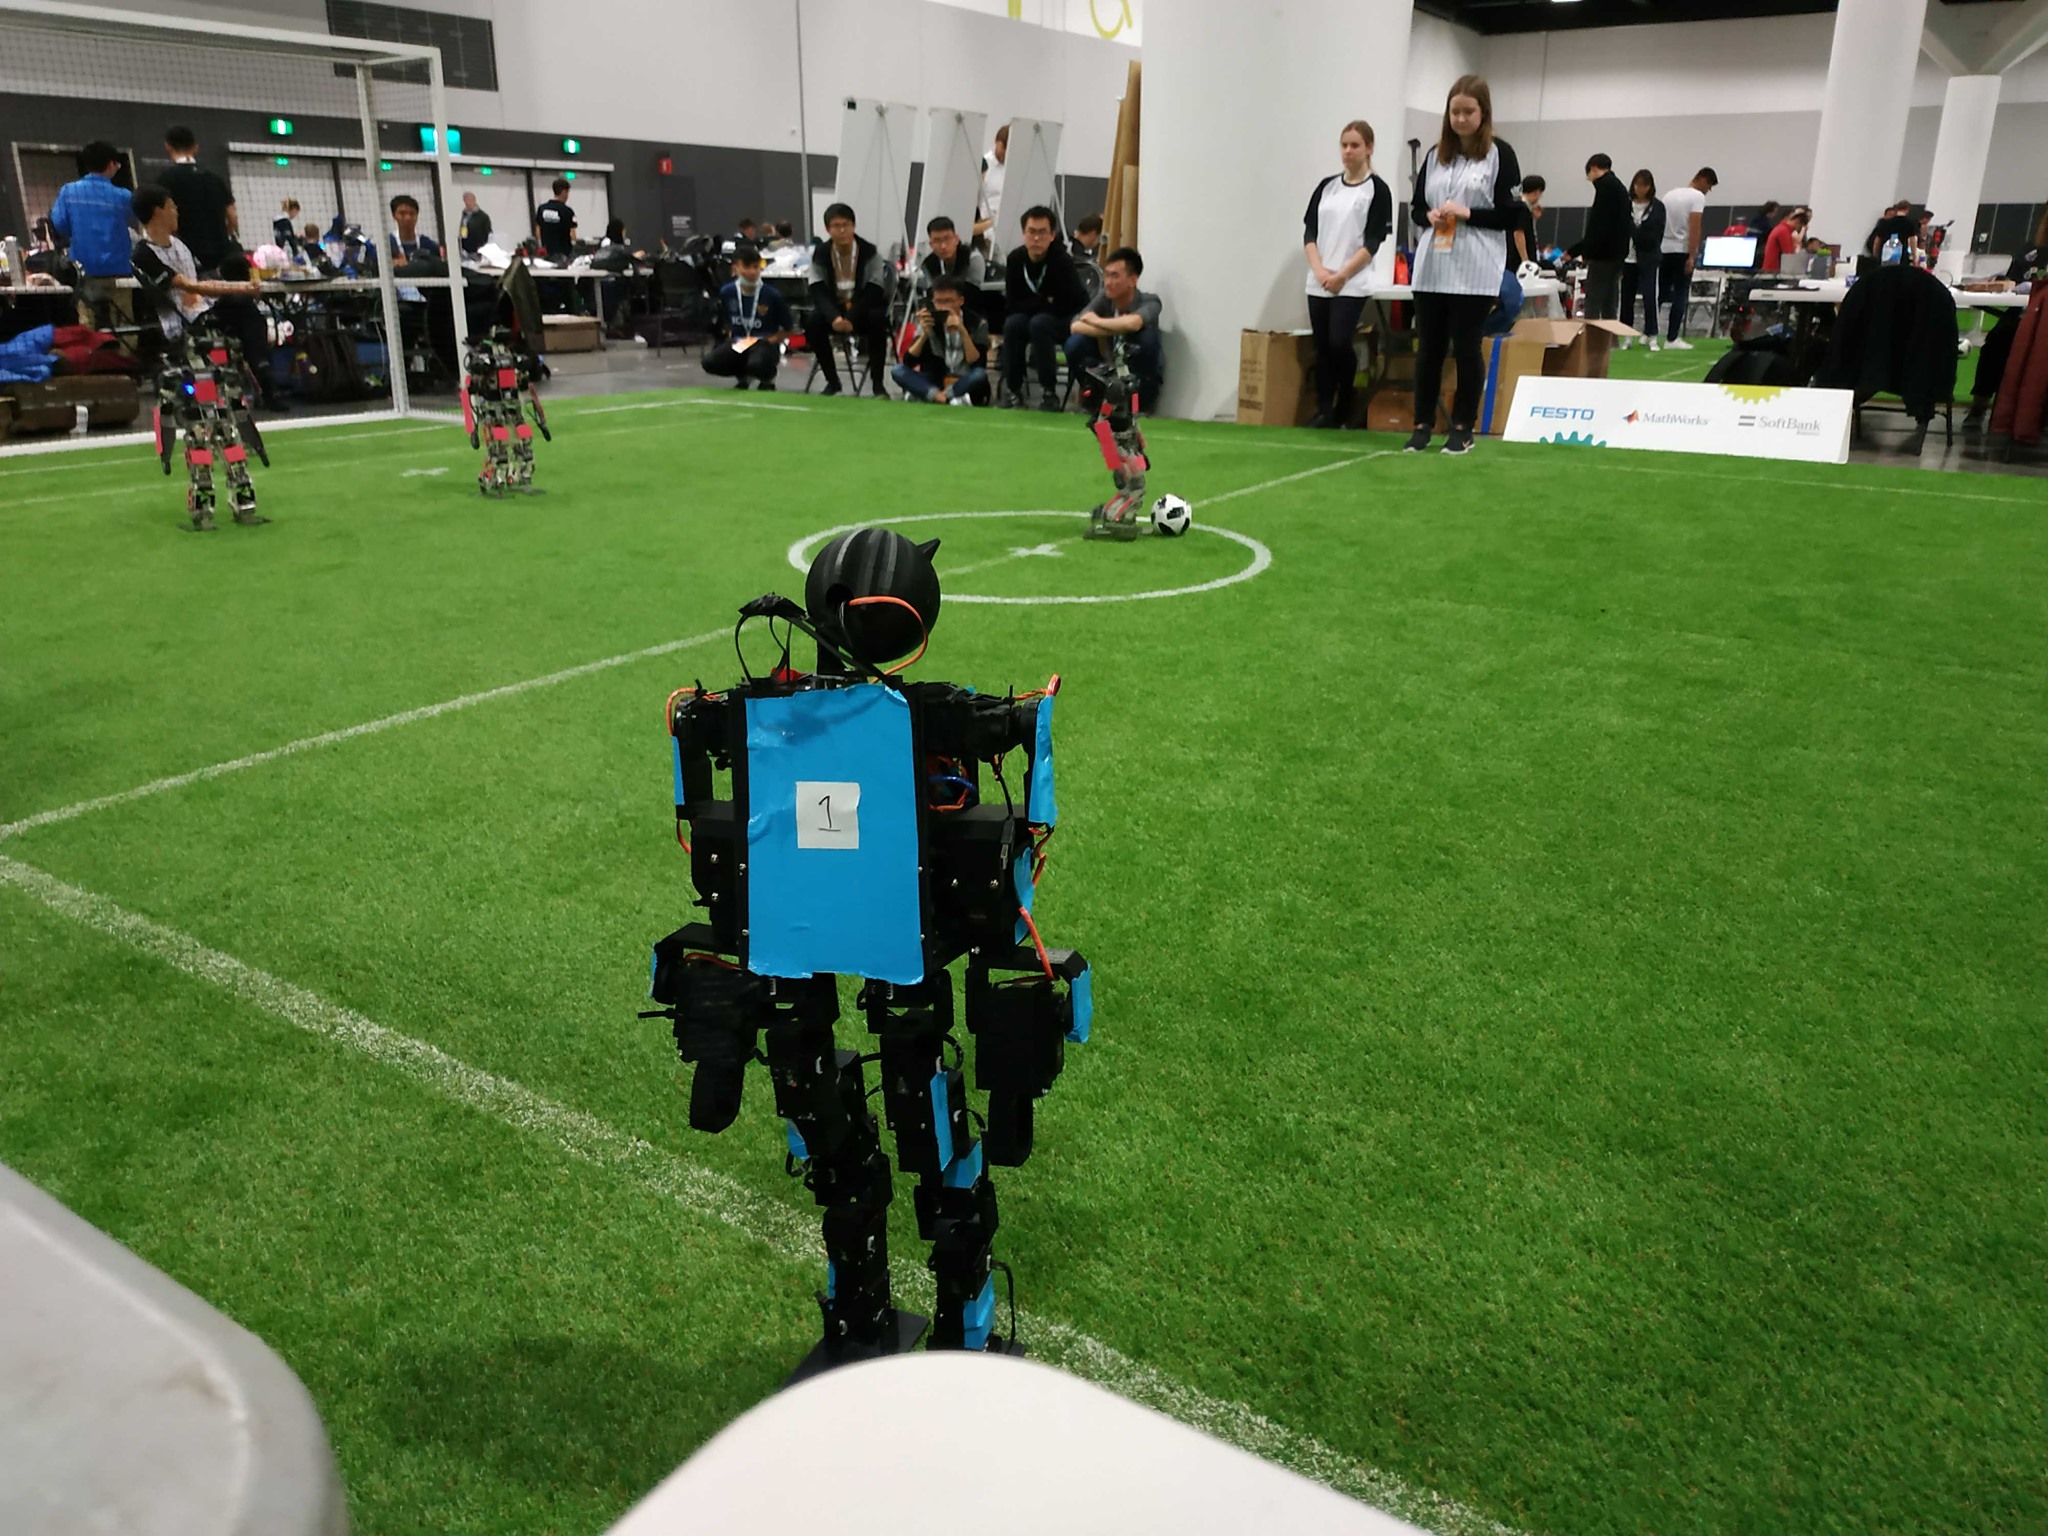 Excitement mounts as humanoid robot teams prepare to play soccer at RoboCup 2019.